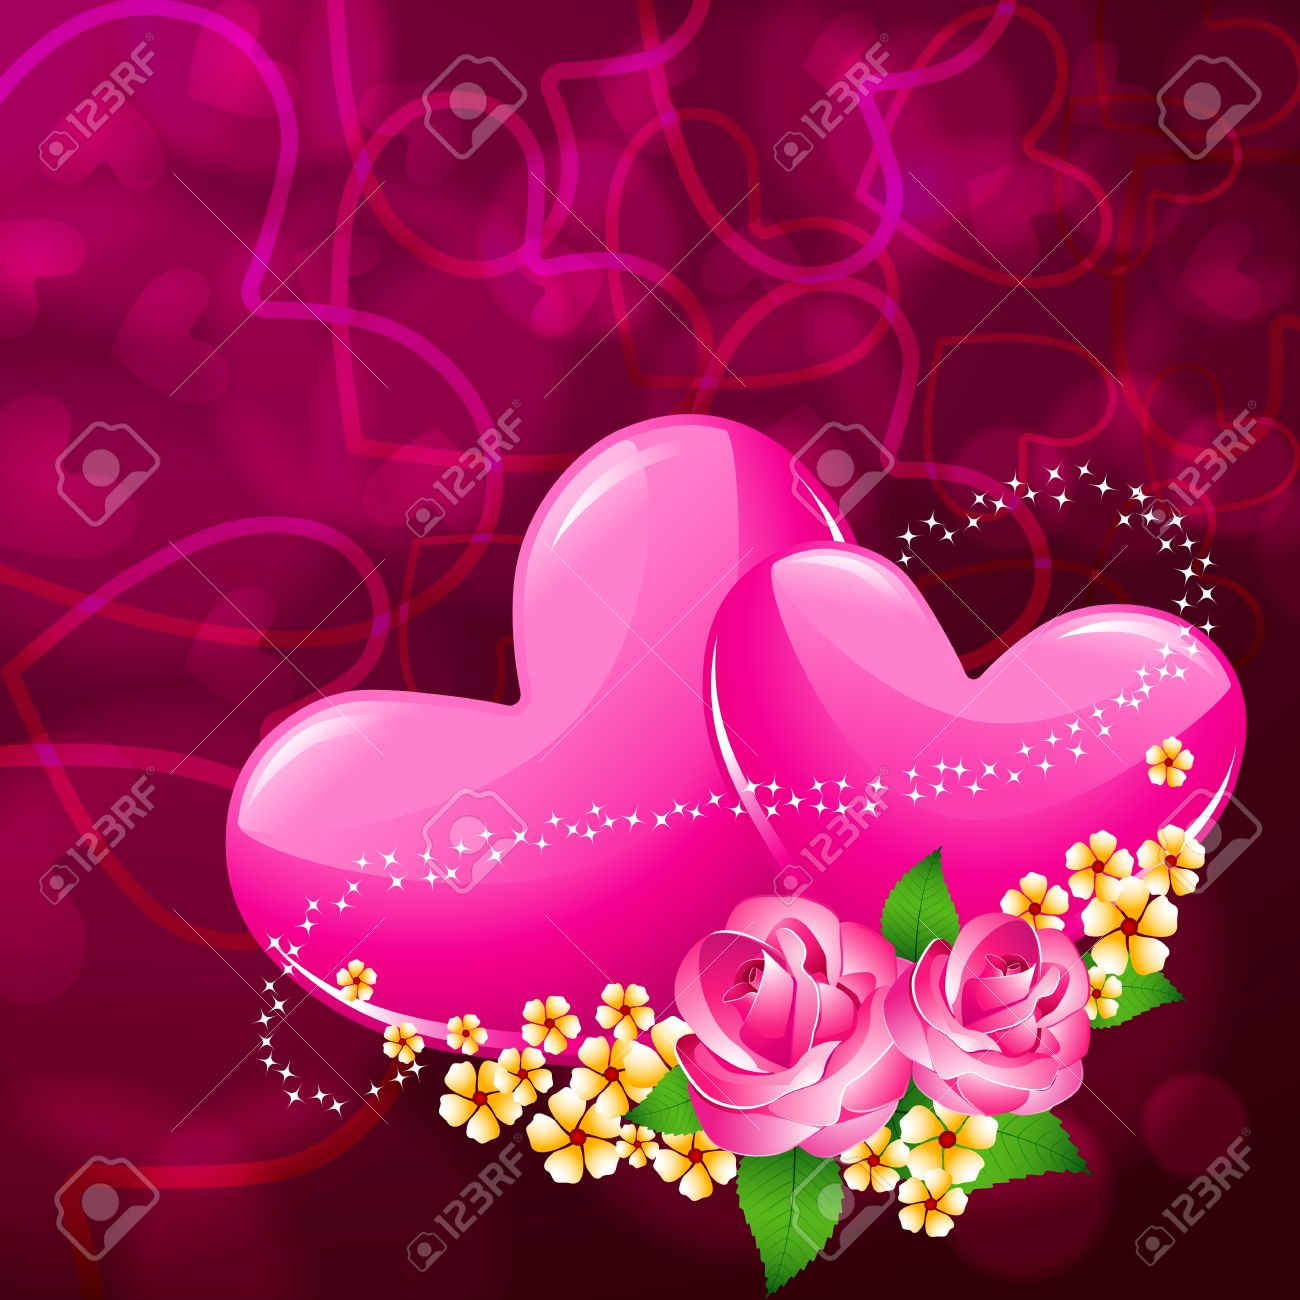 Illustration Of Pair Of Heart With Flower On Love Valentine Card – Flower Valentine Card